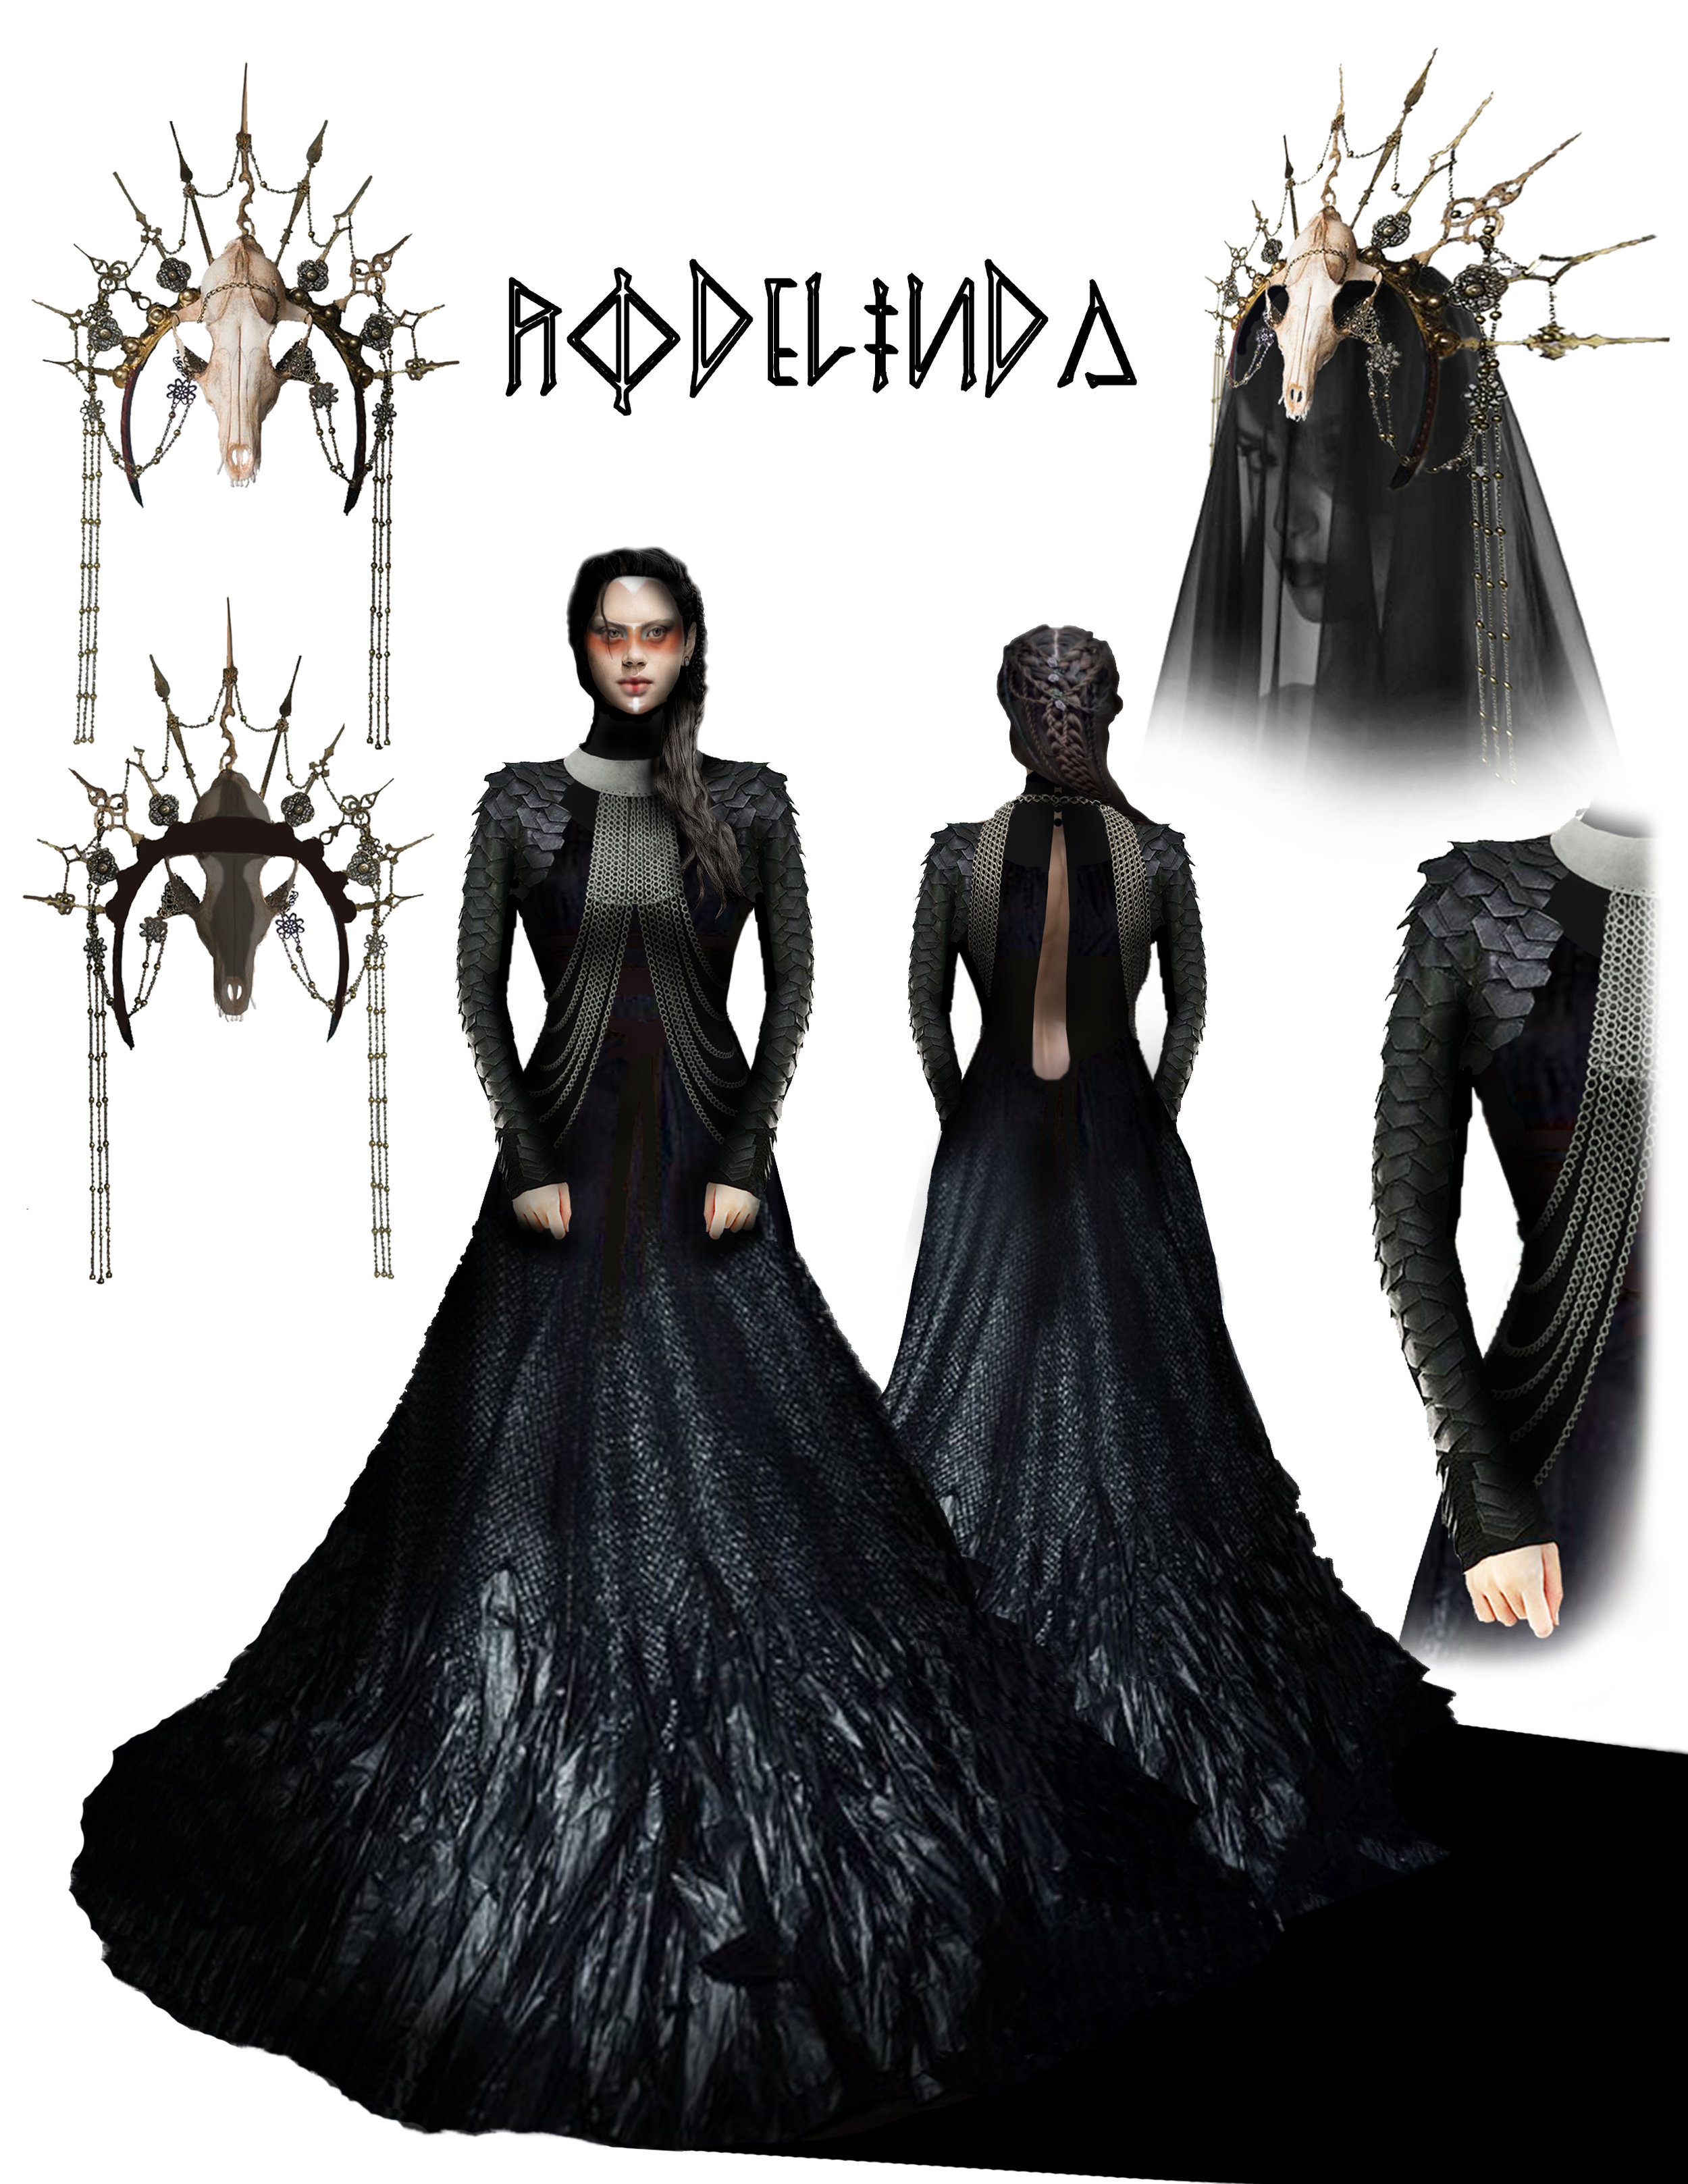 RODELINDA - Costume Design